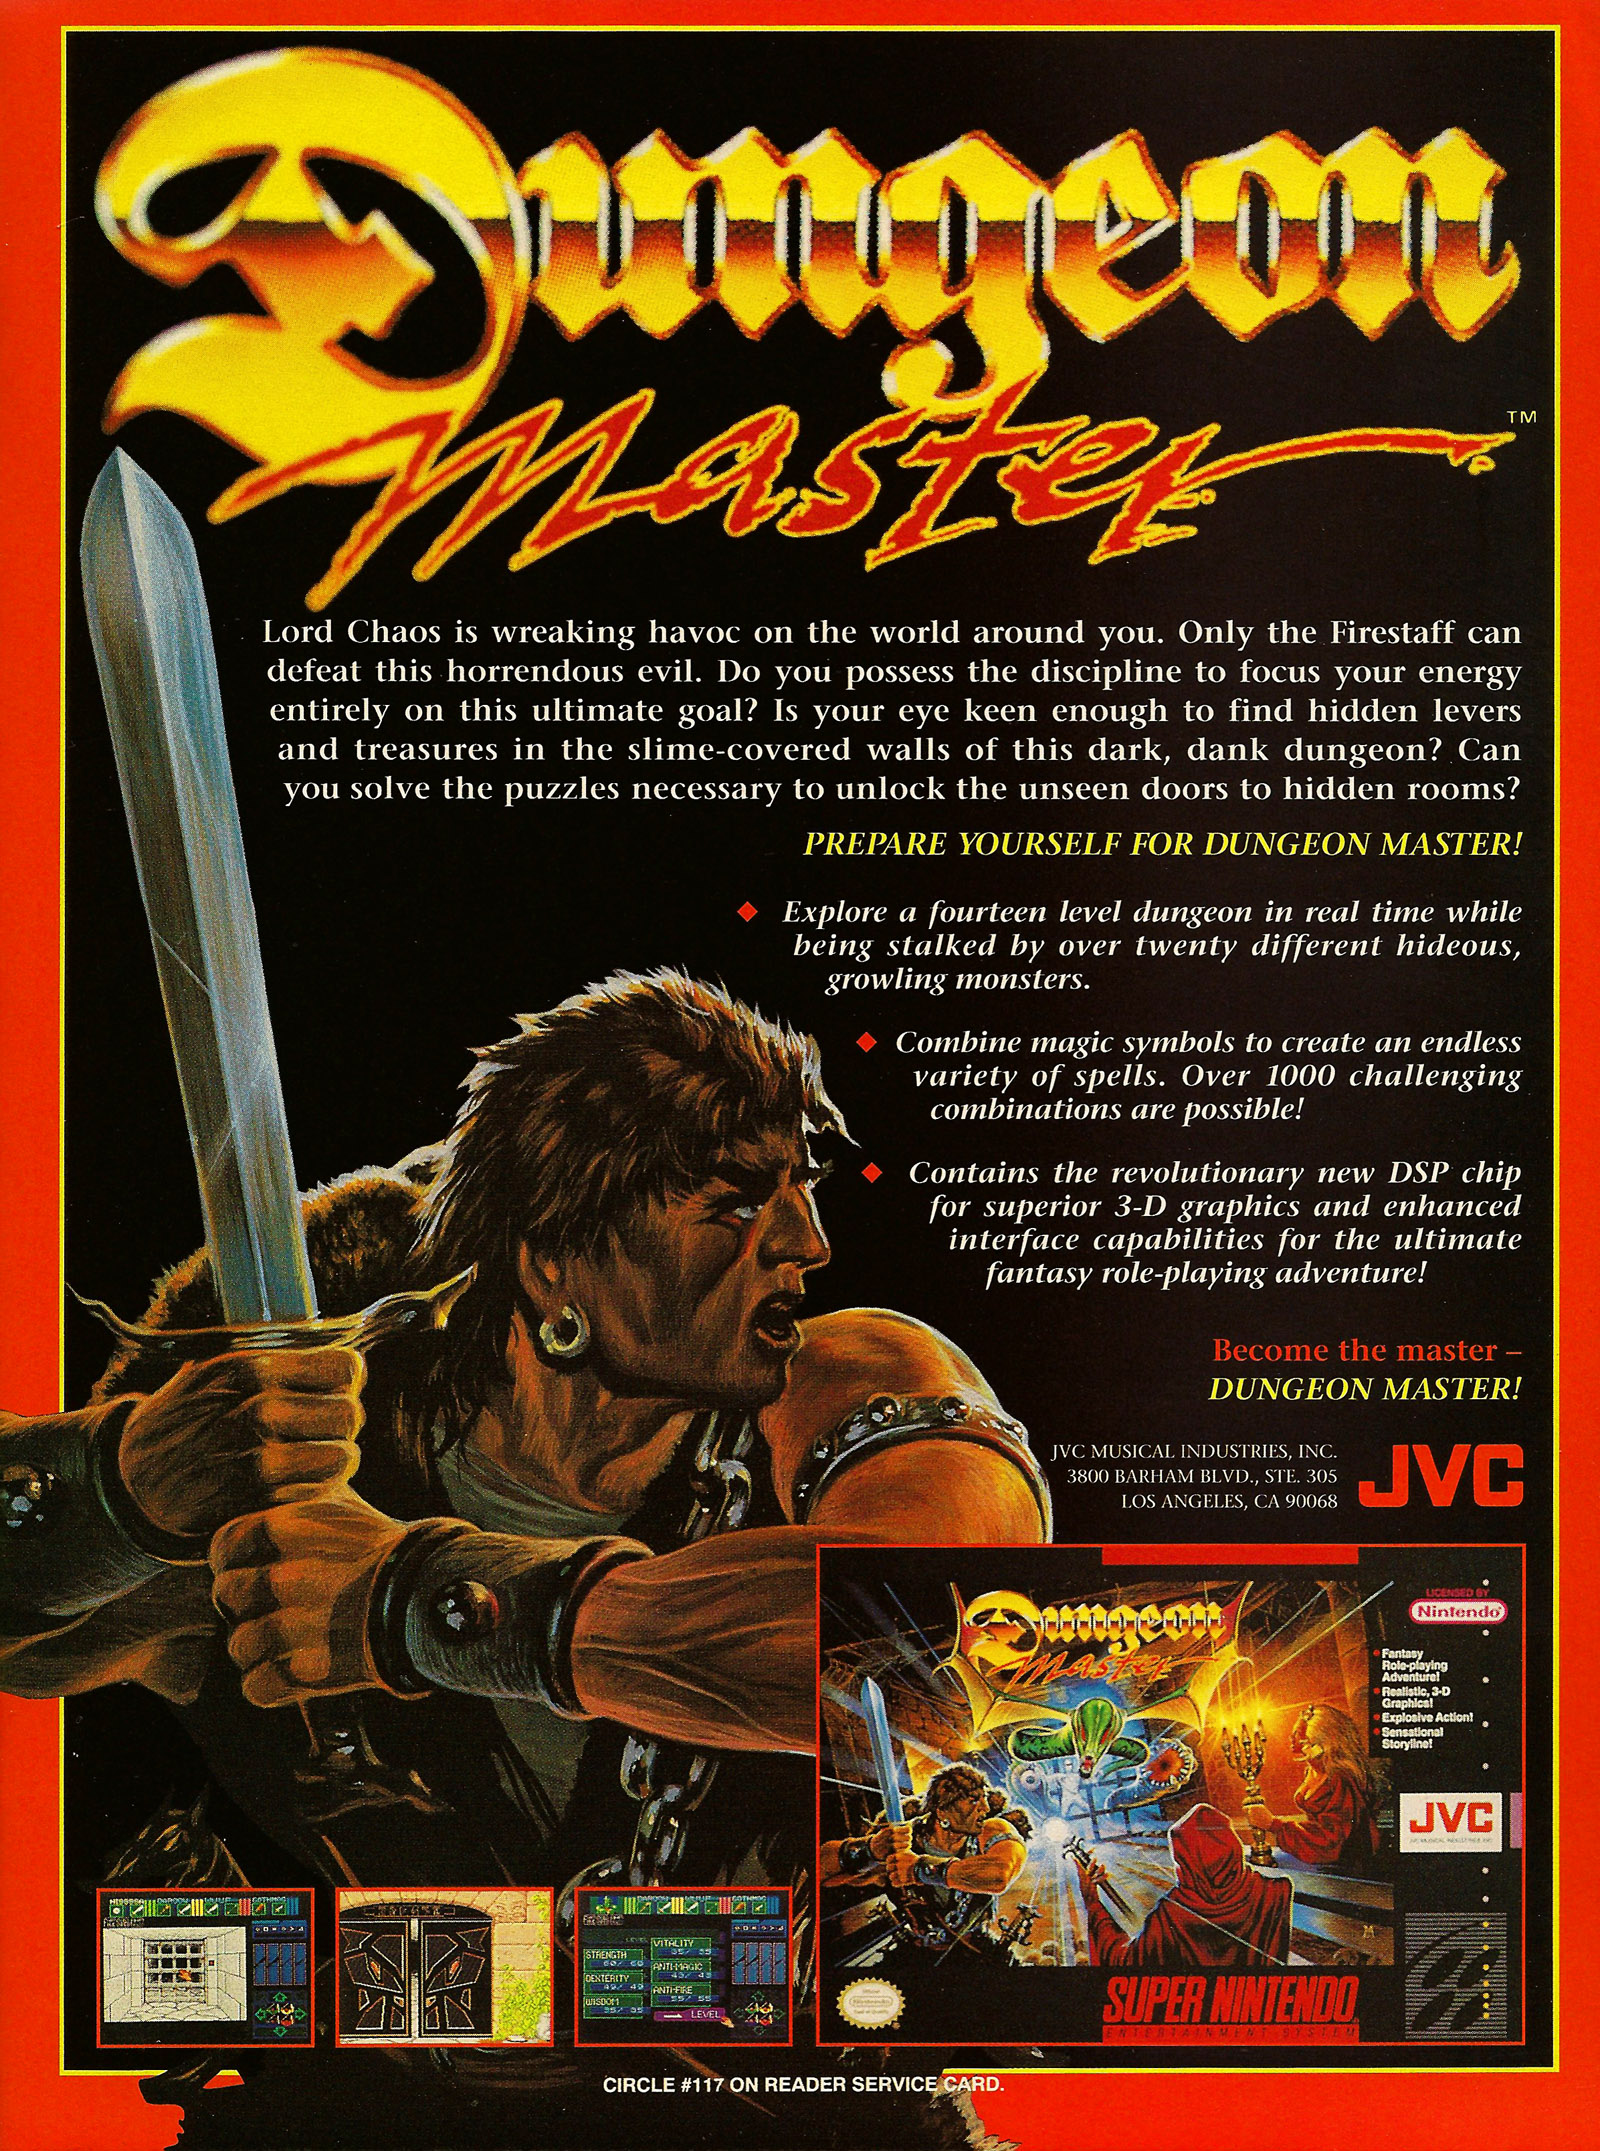 Dungeon Master for Super NES Advertisement published in American magazine 'VideoGames And Computer Entertainment', Issue #55 August 1993, Page 69